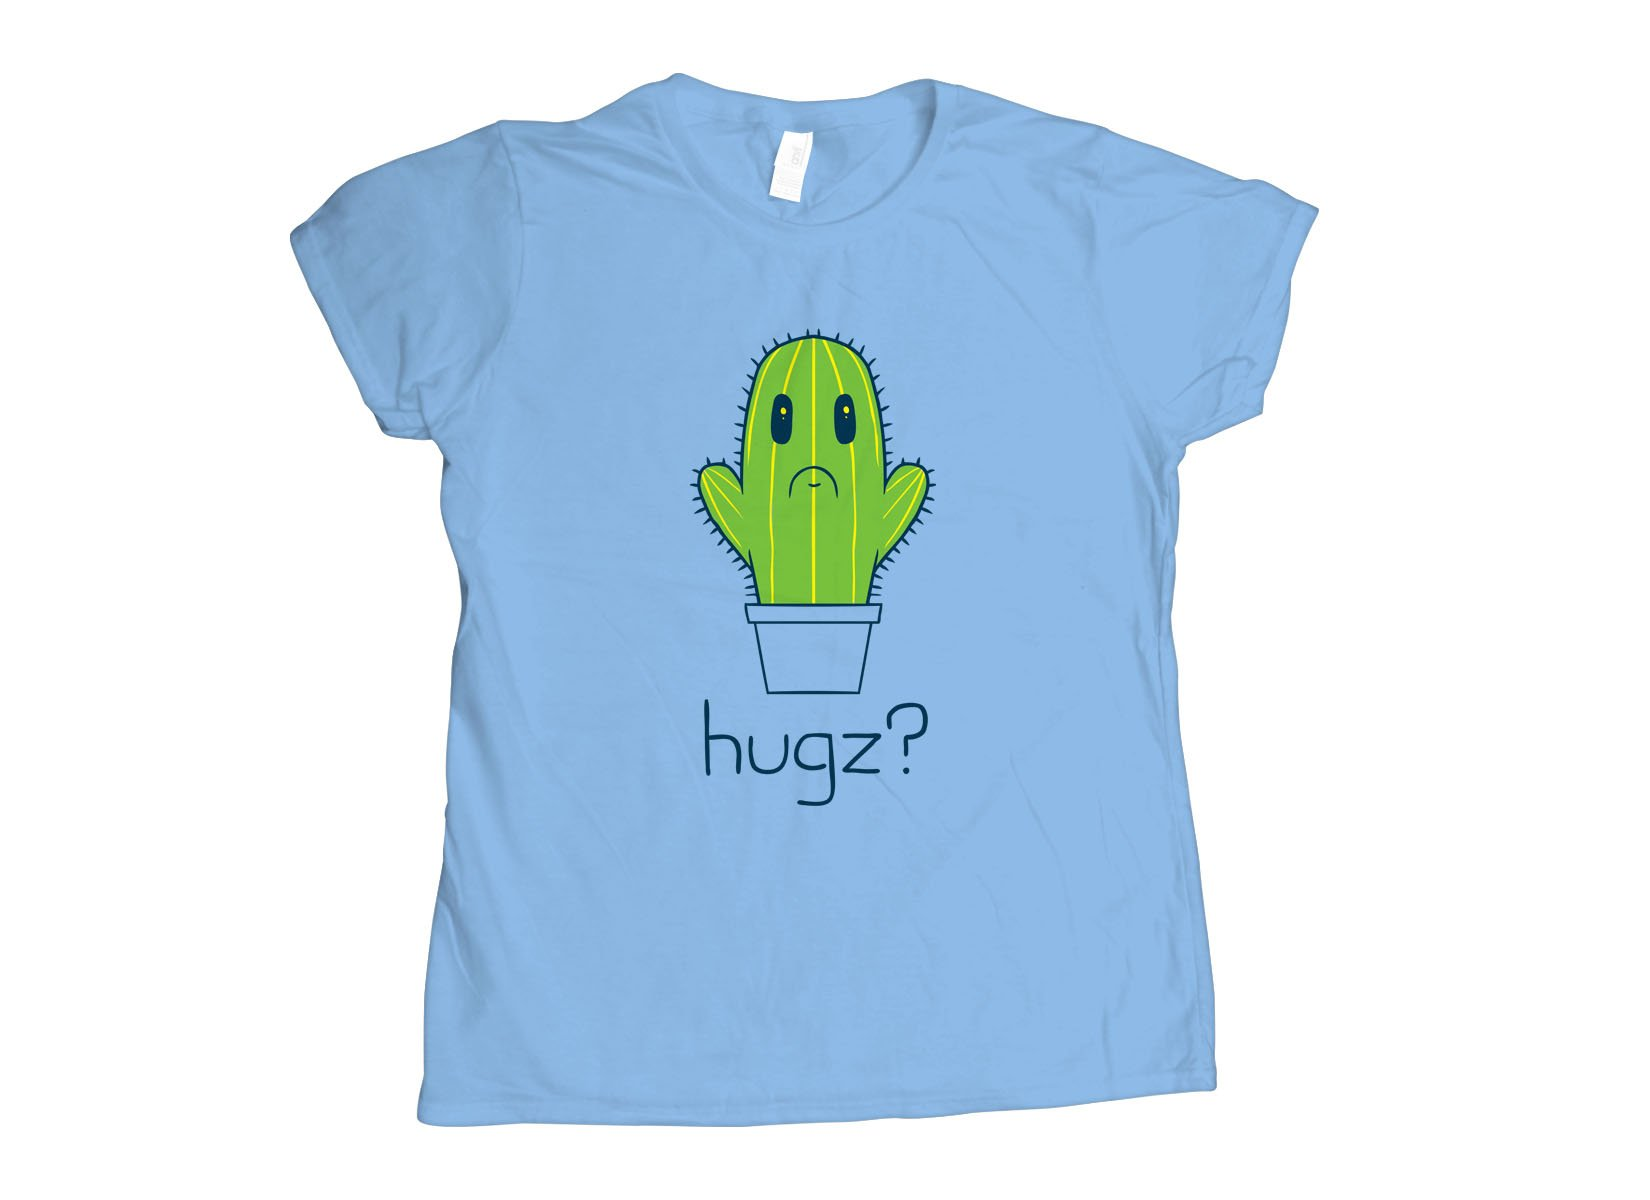 Hugz? Cactus on Womens T-Shirt